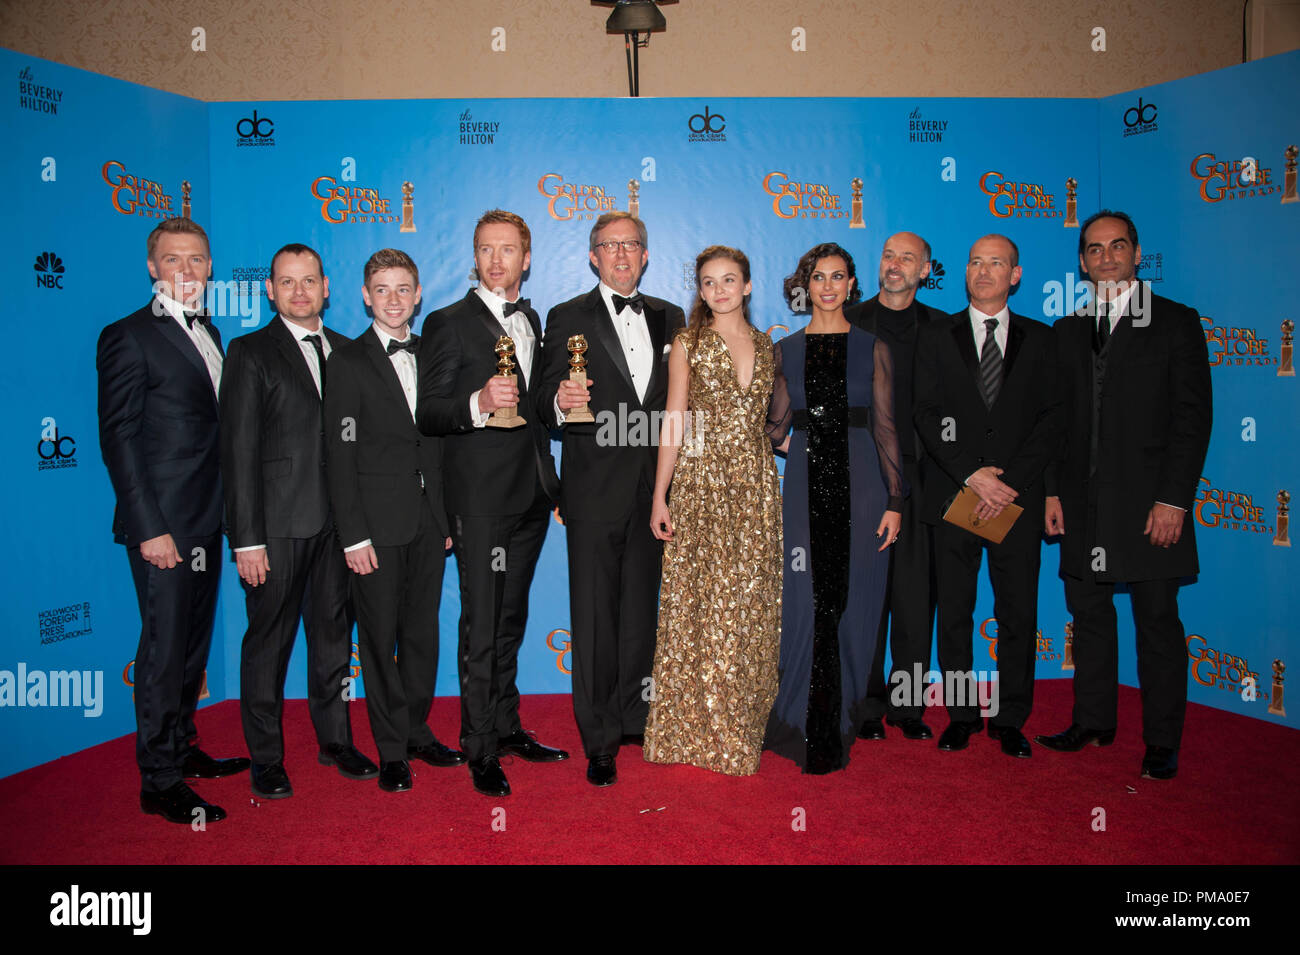 "For BEST TELEVISION SERIES – DRAMA, the Golden Globe is awarded to ""HOMELAND"" (SHOWTIME), produced by SHOWTIME, Teakwood Lane Productions, Cherry Pie Productions, Keshet, Fox 21. Diego Klattenhoff, Gideon Raff, Jackson Pace, Damian Lewis, Alex Gansa, Morgan Saylor, Morena Baccarin, David Marciano, Howard Gordon, and Navid Negahban pose with the award backstage in the press room at the 70th Annual Golden Globe Awards at the Beverly Hilton in Beverly Hills, CA on Sunday, January 13, 2013. - Stock Image"